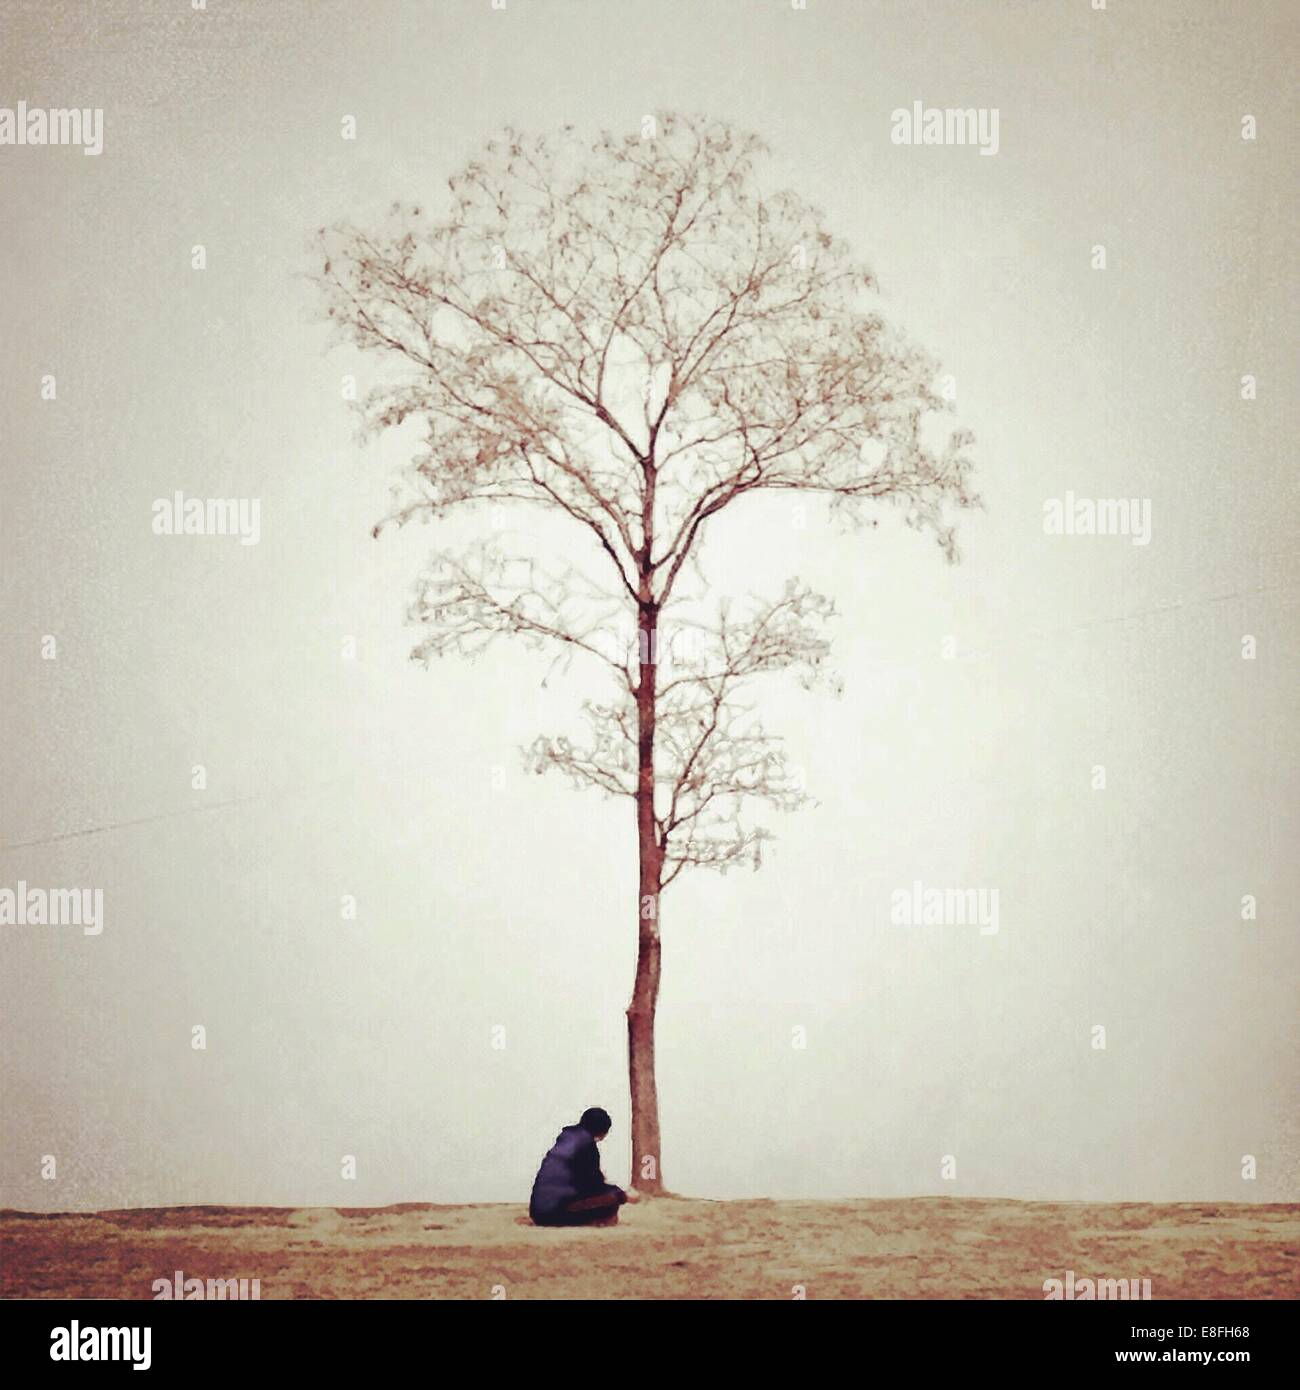 Woman sitting under tree Photo Stock